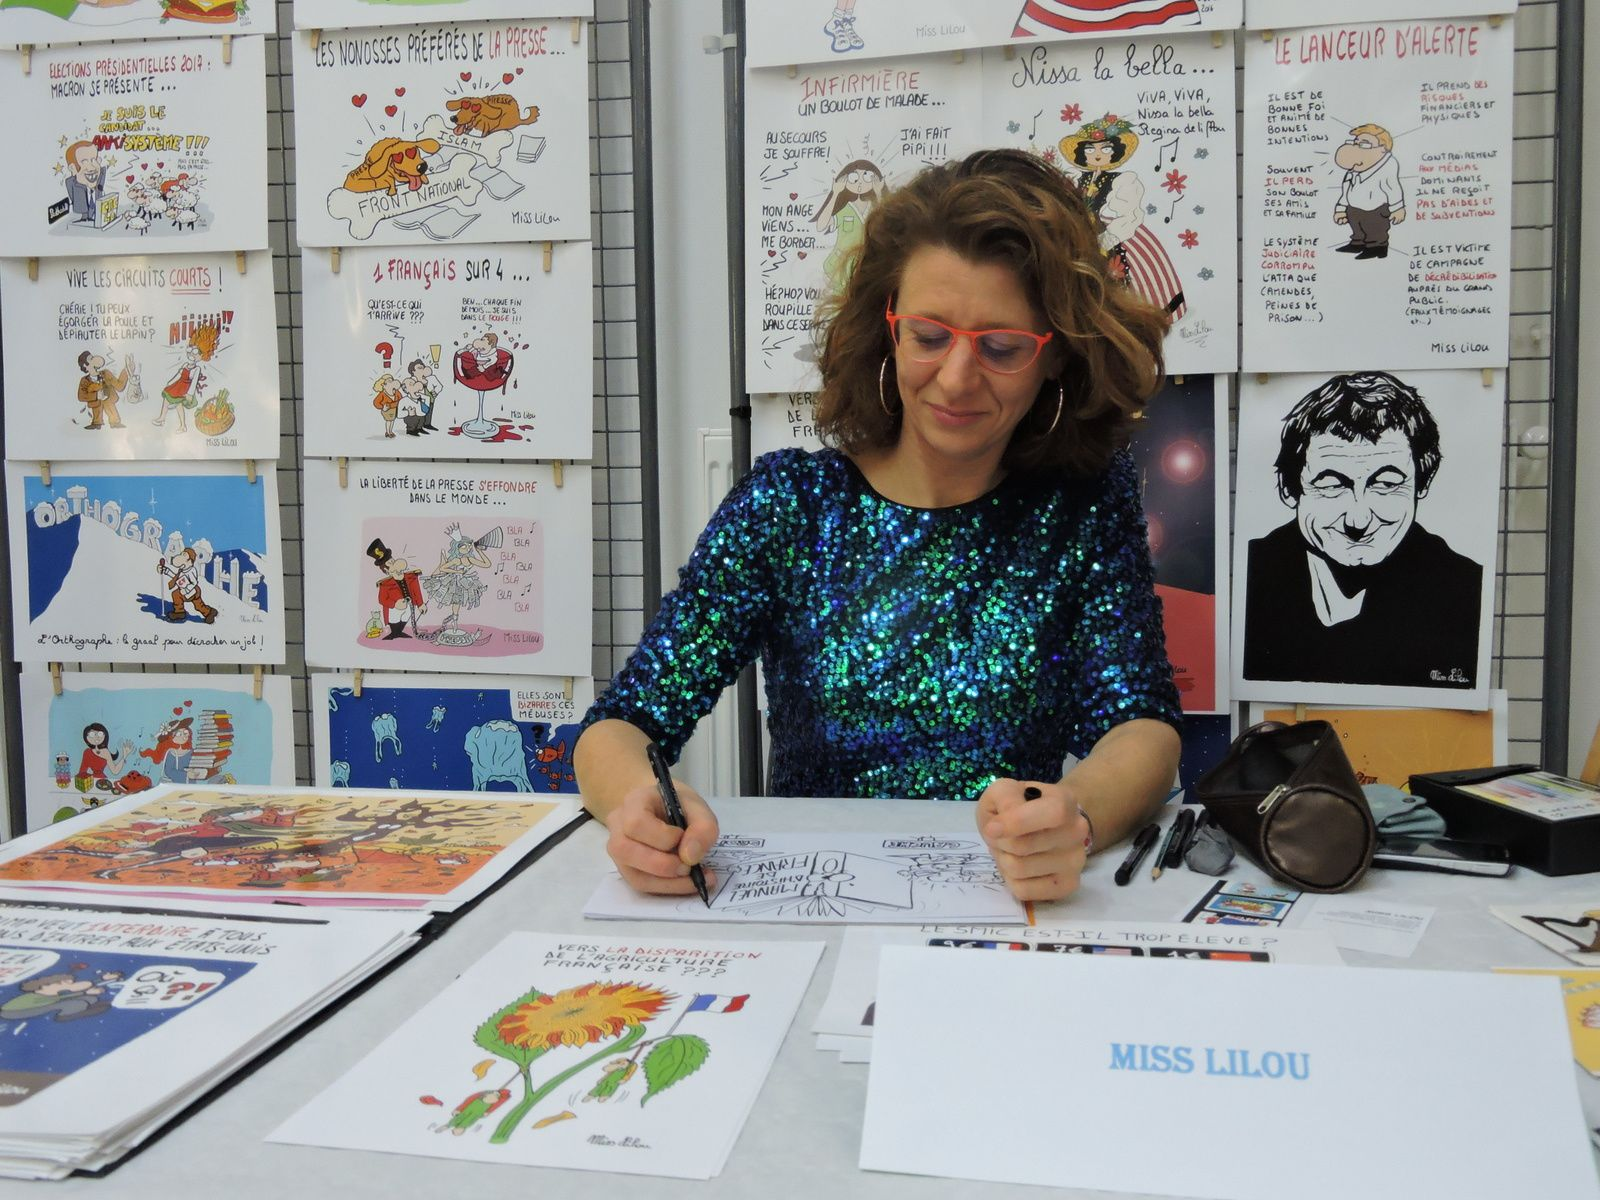 Miss Lilou ( photo : Dominique Fleurence Chailan )